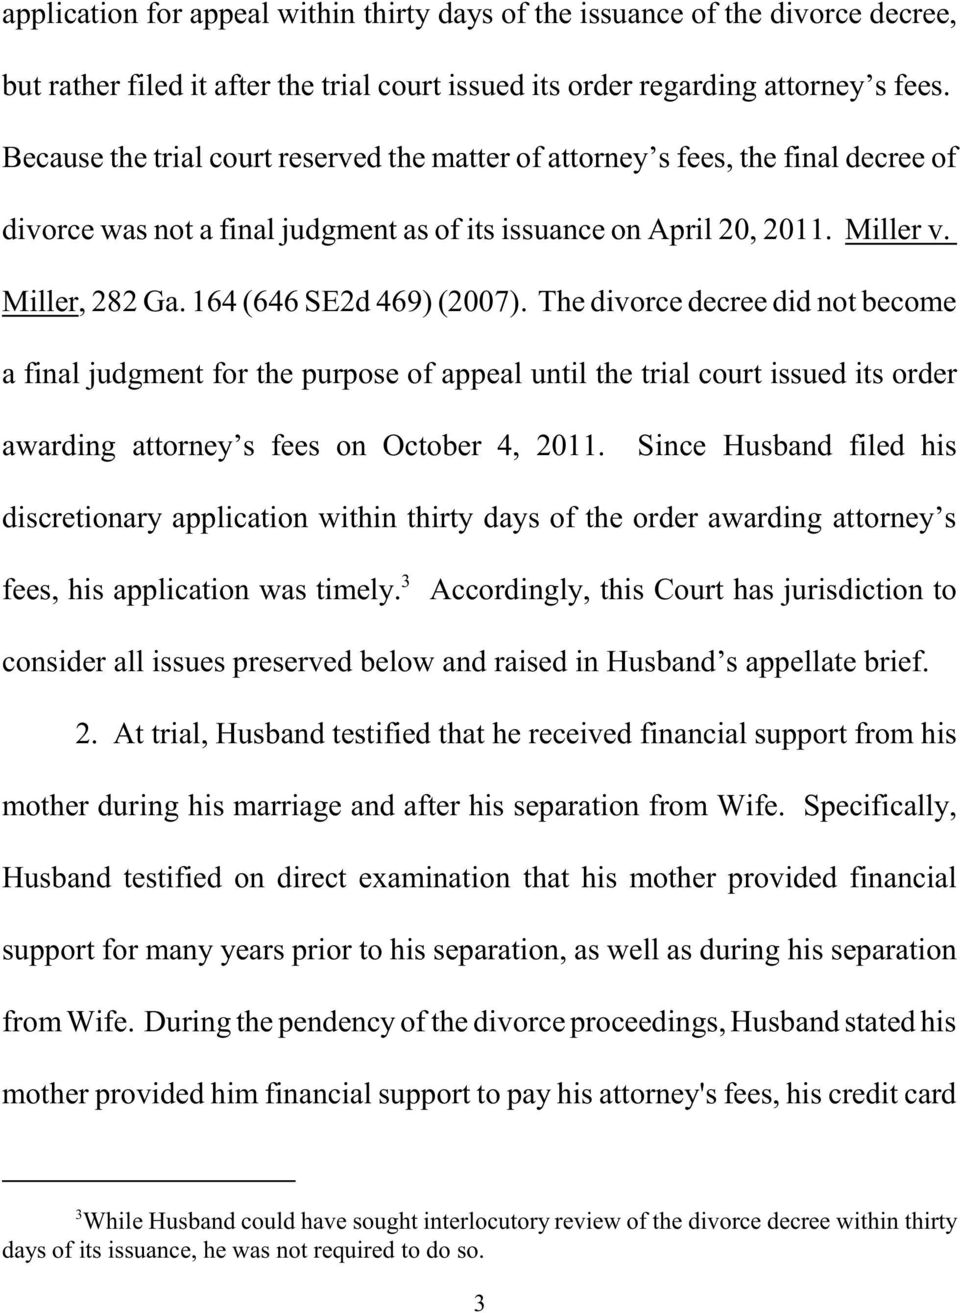 164 (646 SE2d 469) (2007). The divorce decree did not become a final judgment for the purpose of appeal until the trial court issued its order awarding attorney s fees on October 4, 2011.